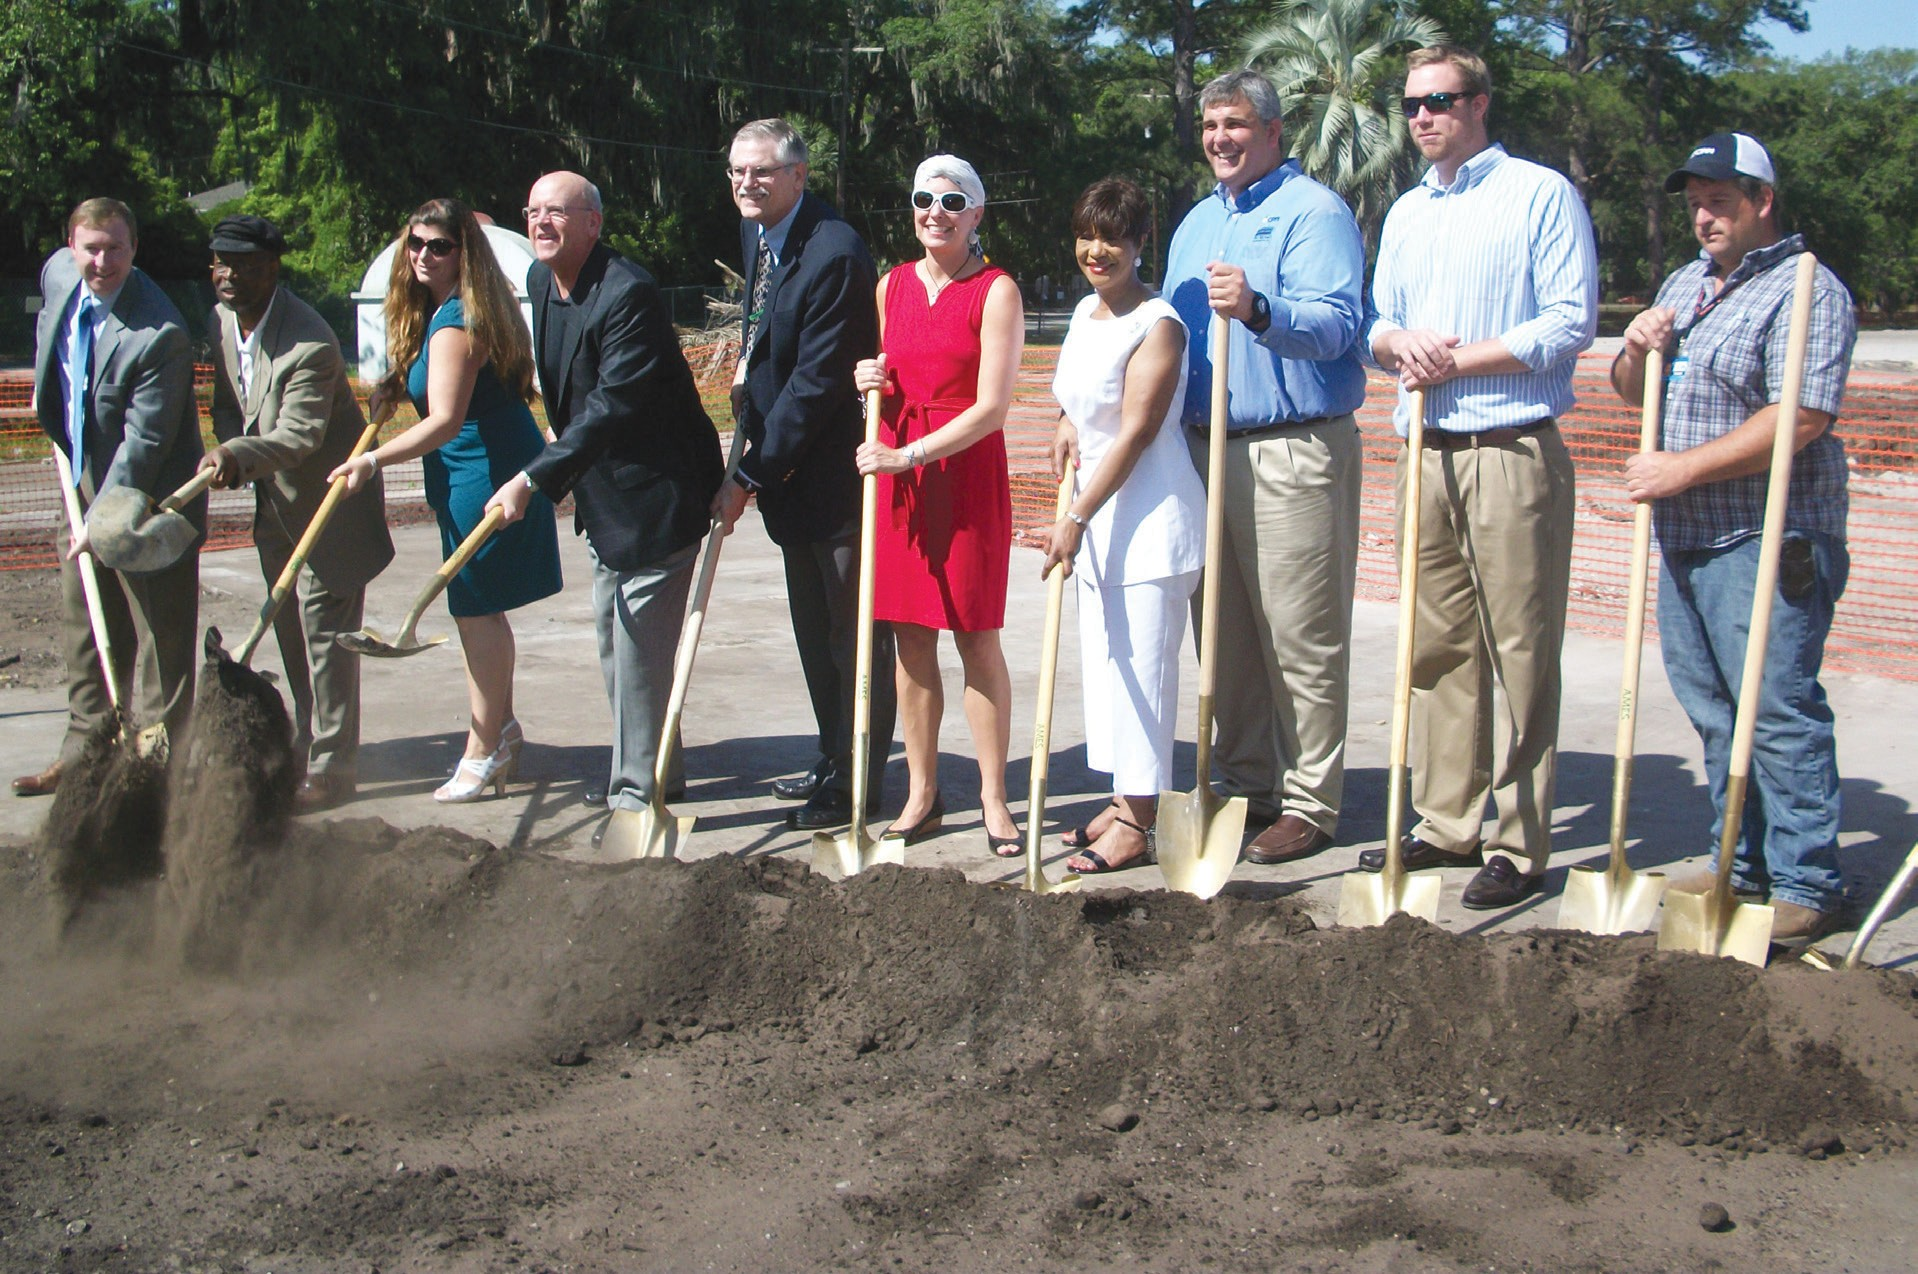 Representatives of the Savannah-Chatham School Board, CPPI of Georgia and Pat Mathis Construction Company pose at Groundbreaking